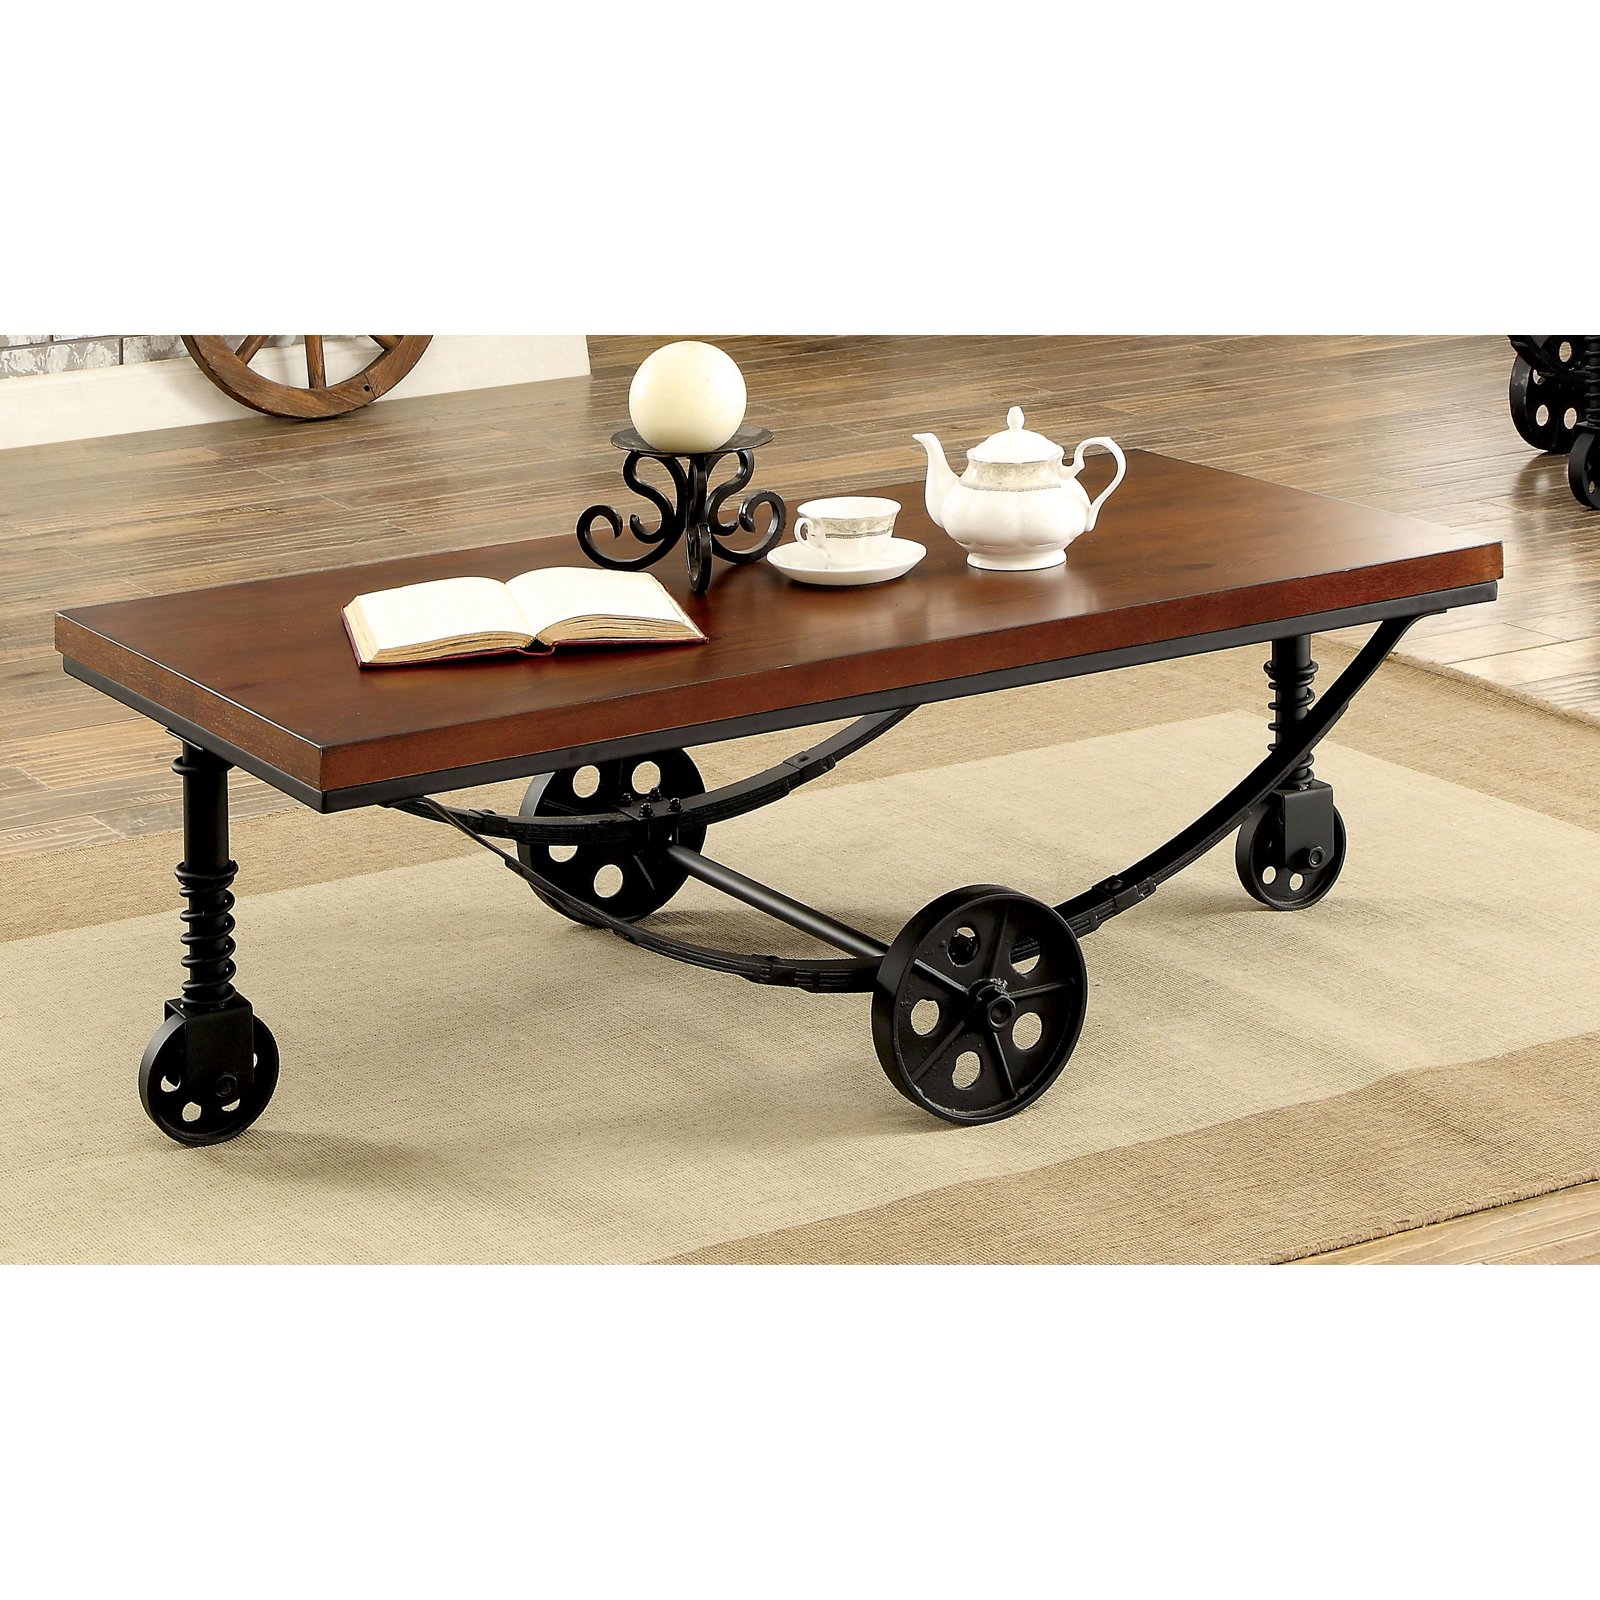 Furniture Of America Mator Industrial Style Caster Wheel Coffee Table